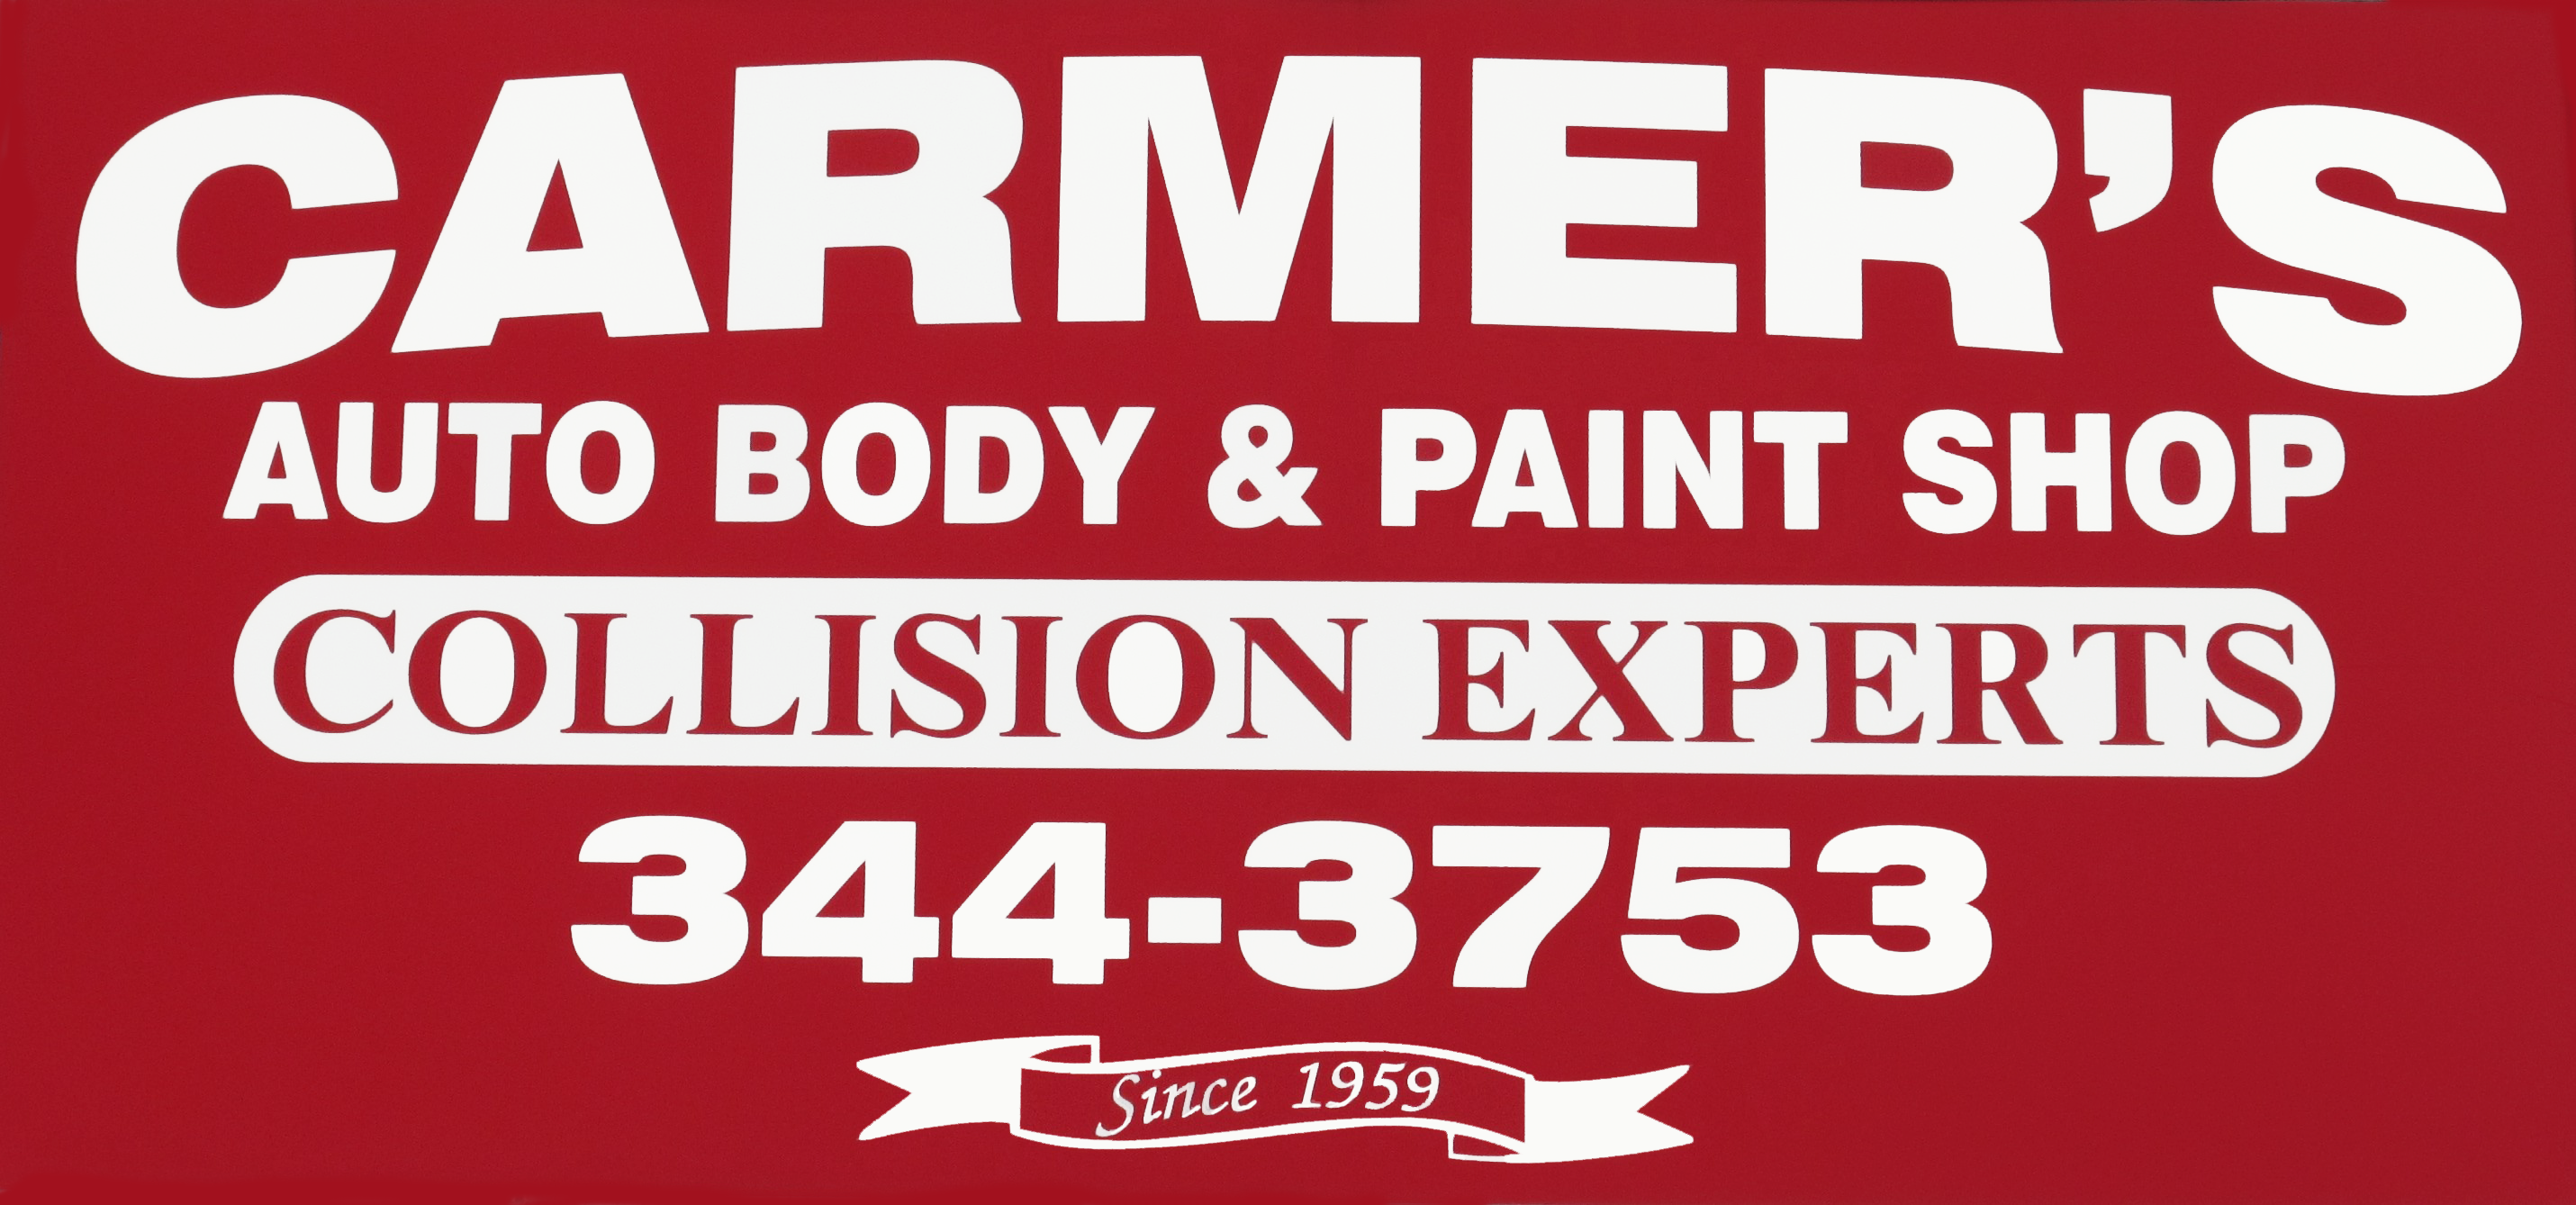 Carmers Auto Body and Paint Shop